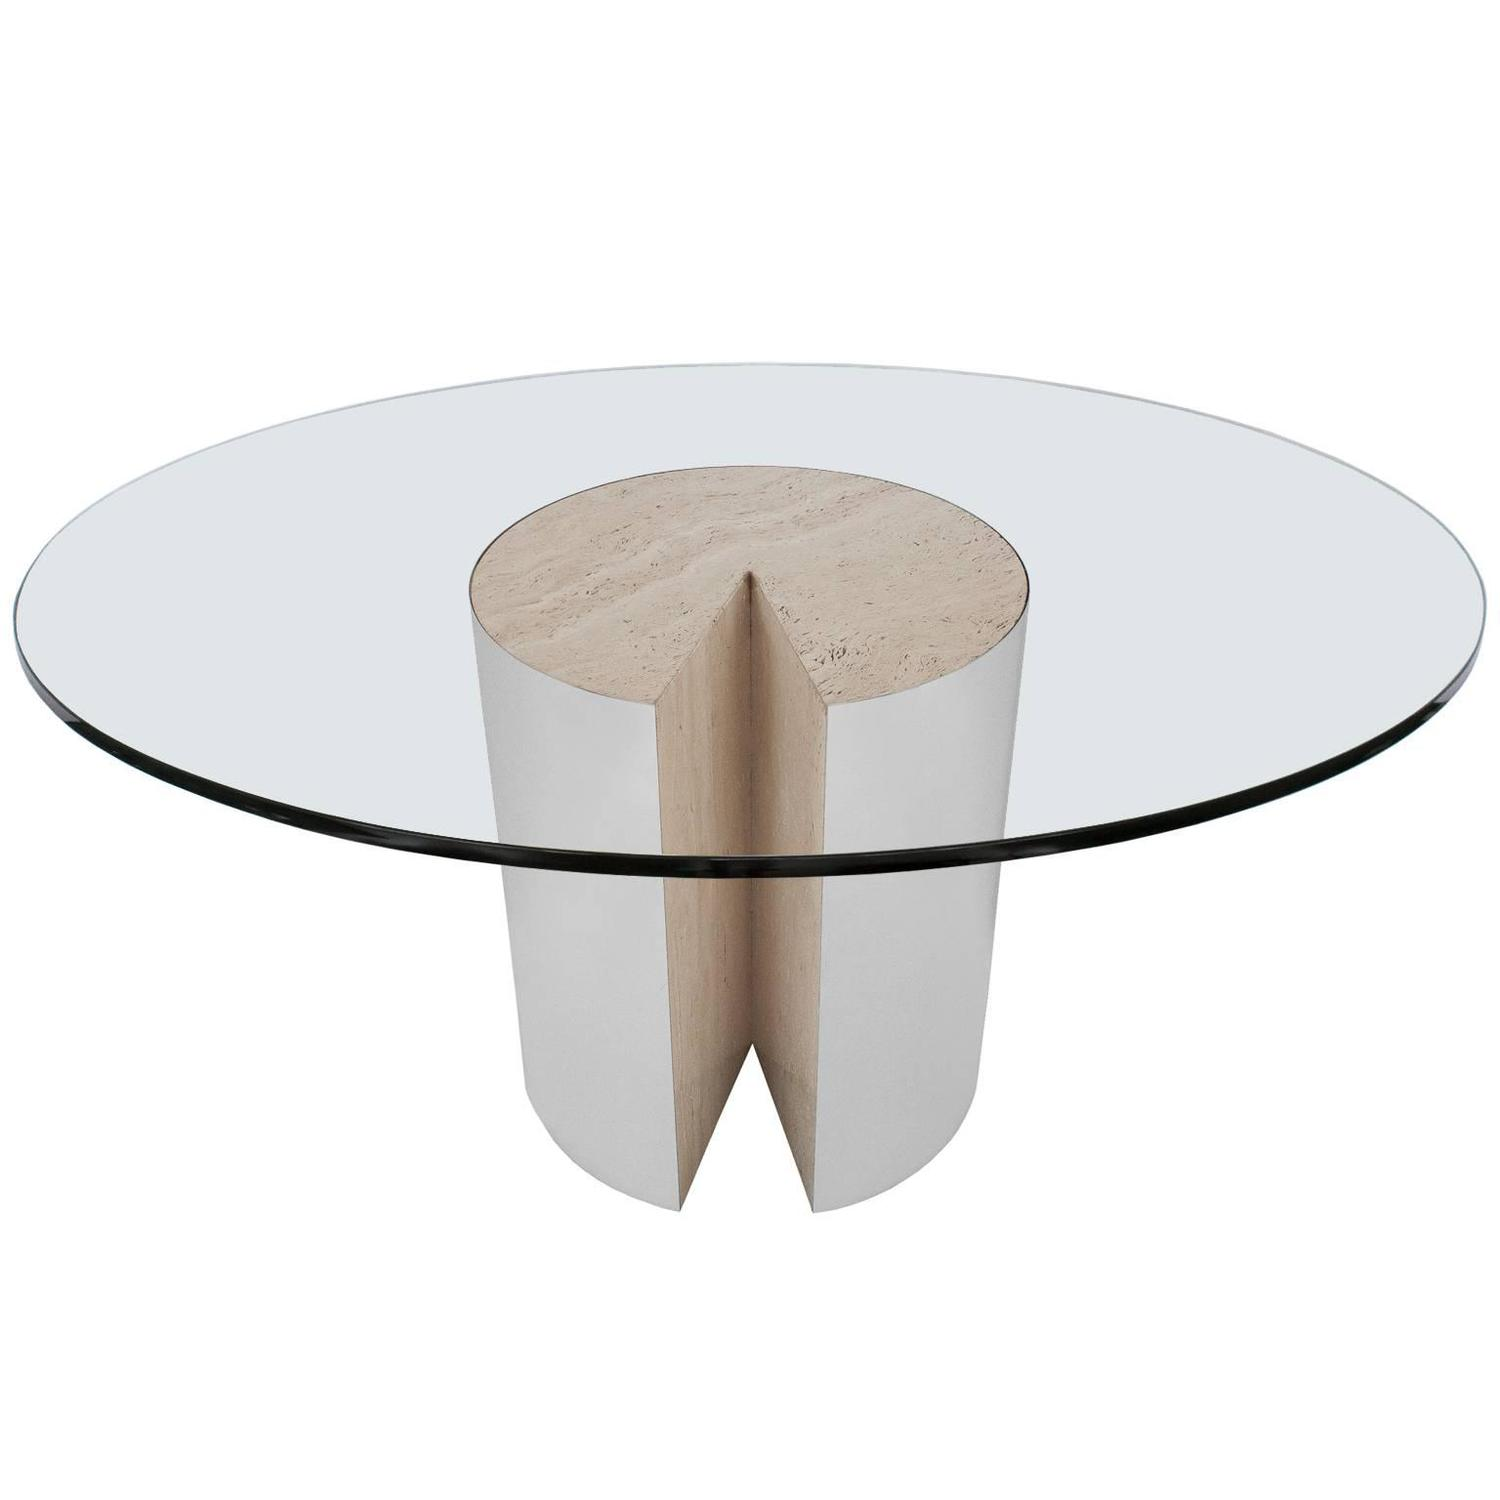 "Rare Leon Rosen Travertine and Chrome ""Pie"" Dining Table for Pace"